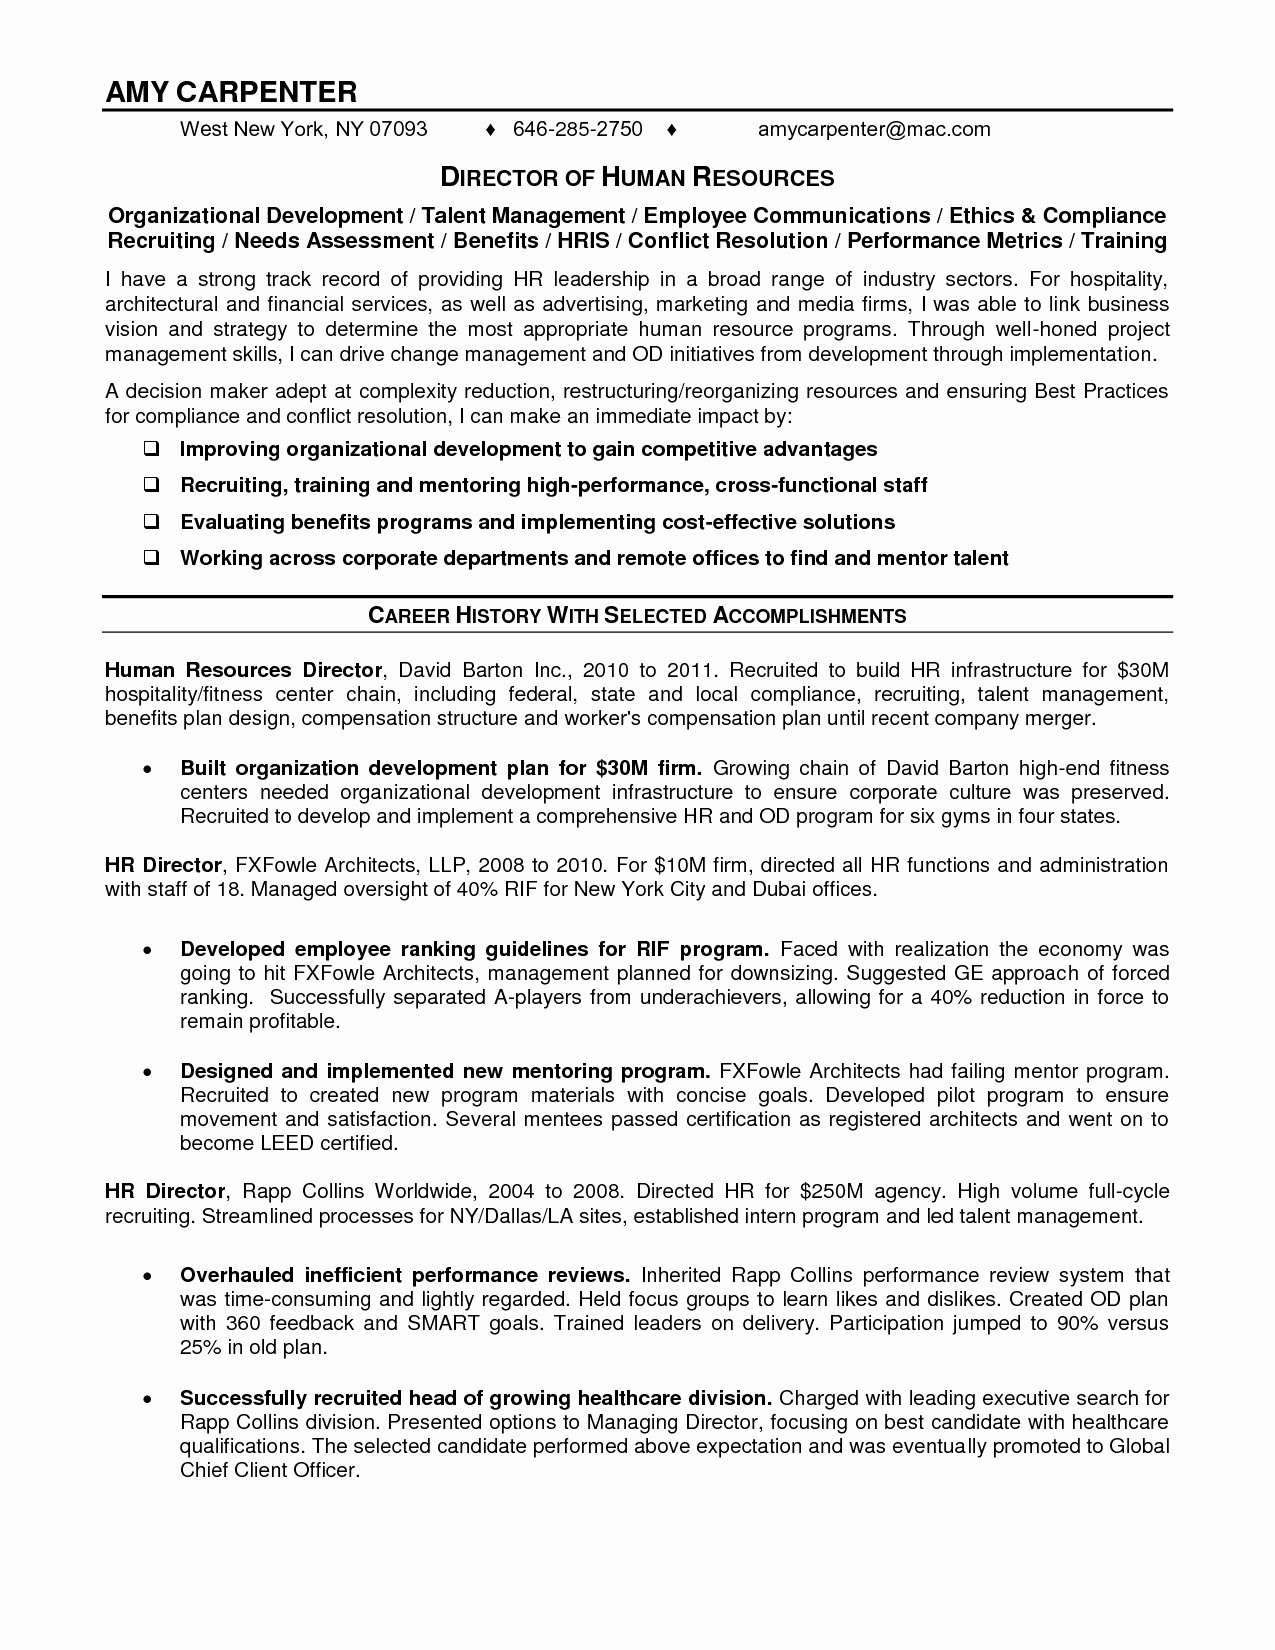 Medical assistant Resume Objective - Resume for Medical assistant Objective New Objective Template for